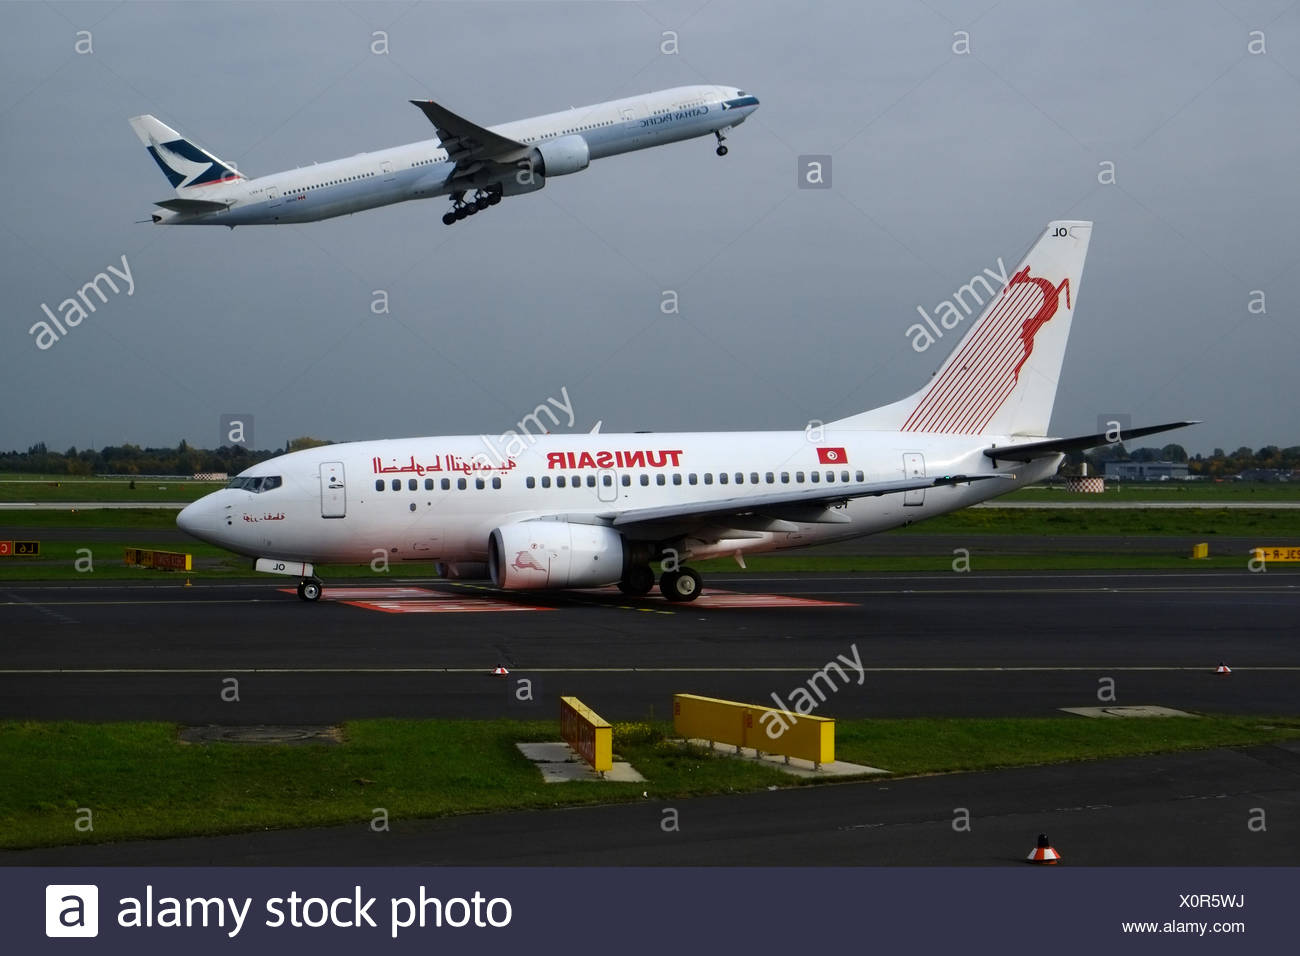 Two airliners - Stock Image